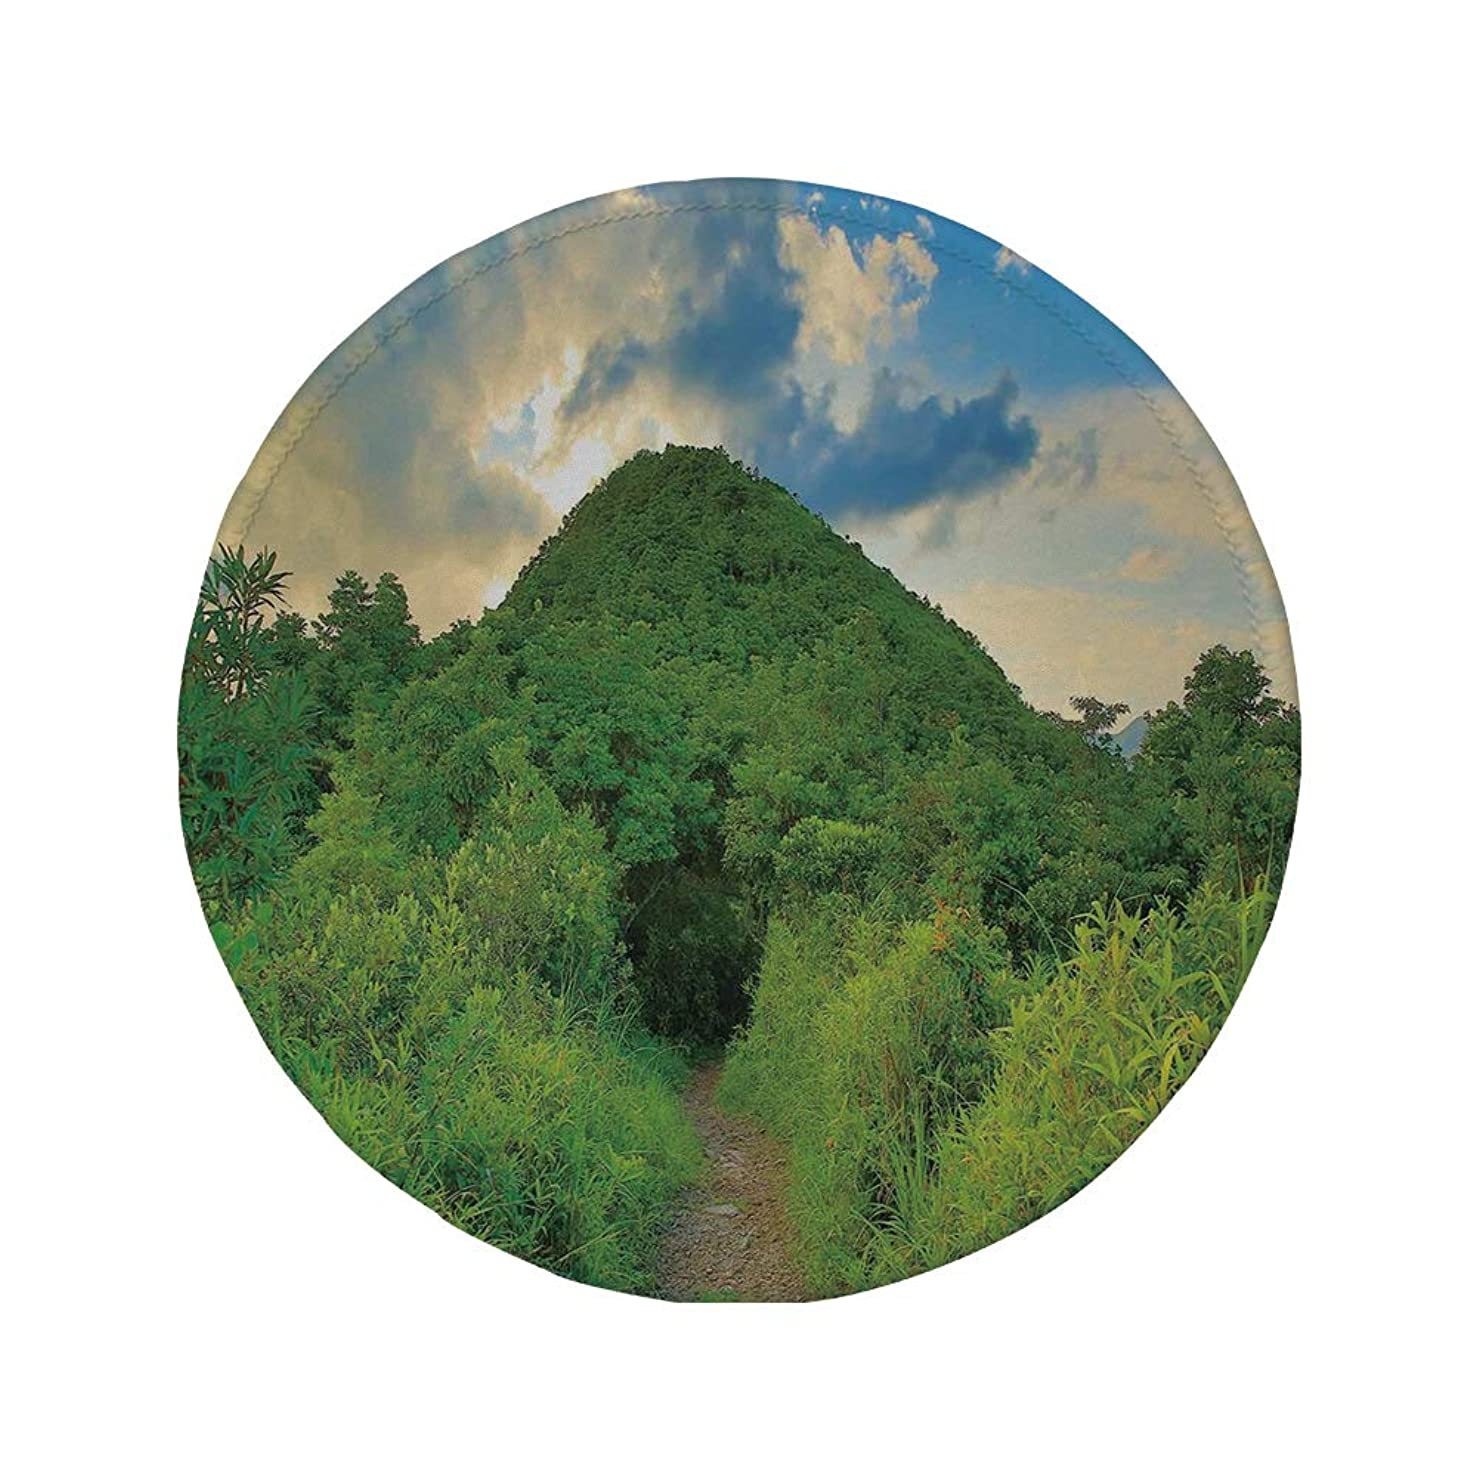 Non-Slip Rubber Round Mouse Pad,Nature,Mountain Path Covered by Trees Foliage Bushes Highland Woodland Landscape,Fern Green Sky Blue,11.8